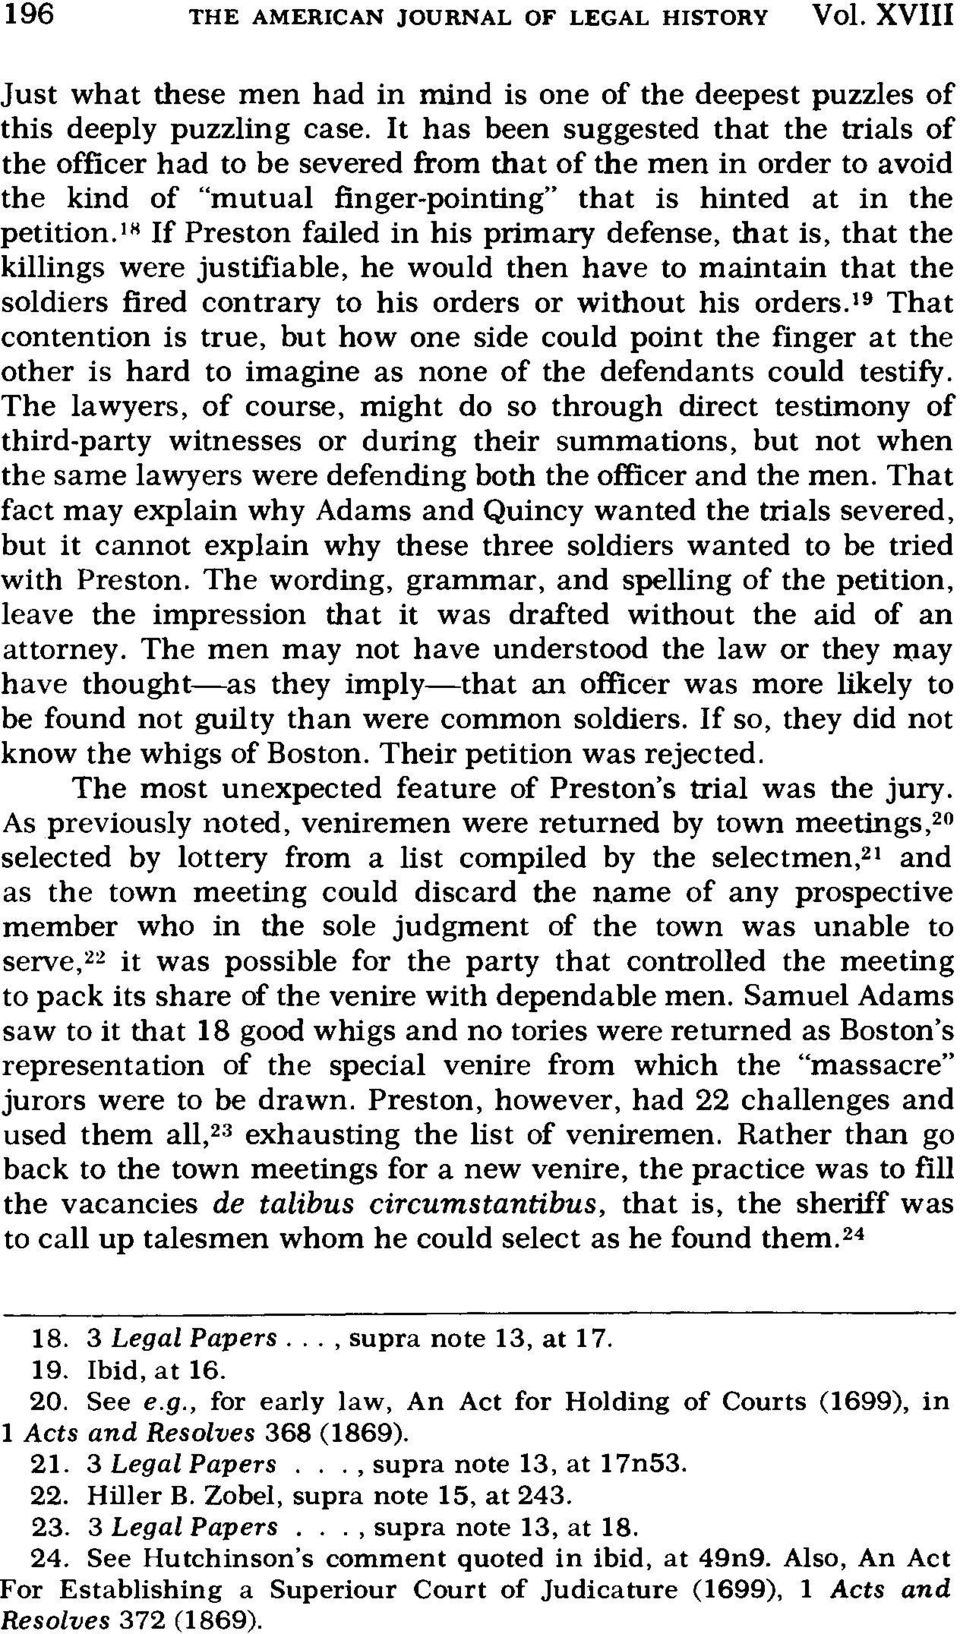 18 If Preston failed in his primary defense, that is, that the killings were justifiable, he would then have to maintain that the soldiers fired contrary to his orders or without his orders.